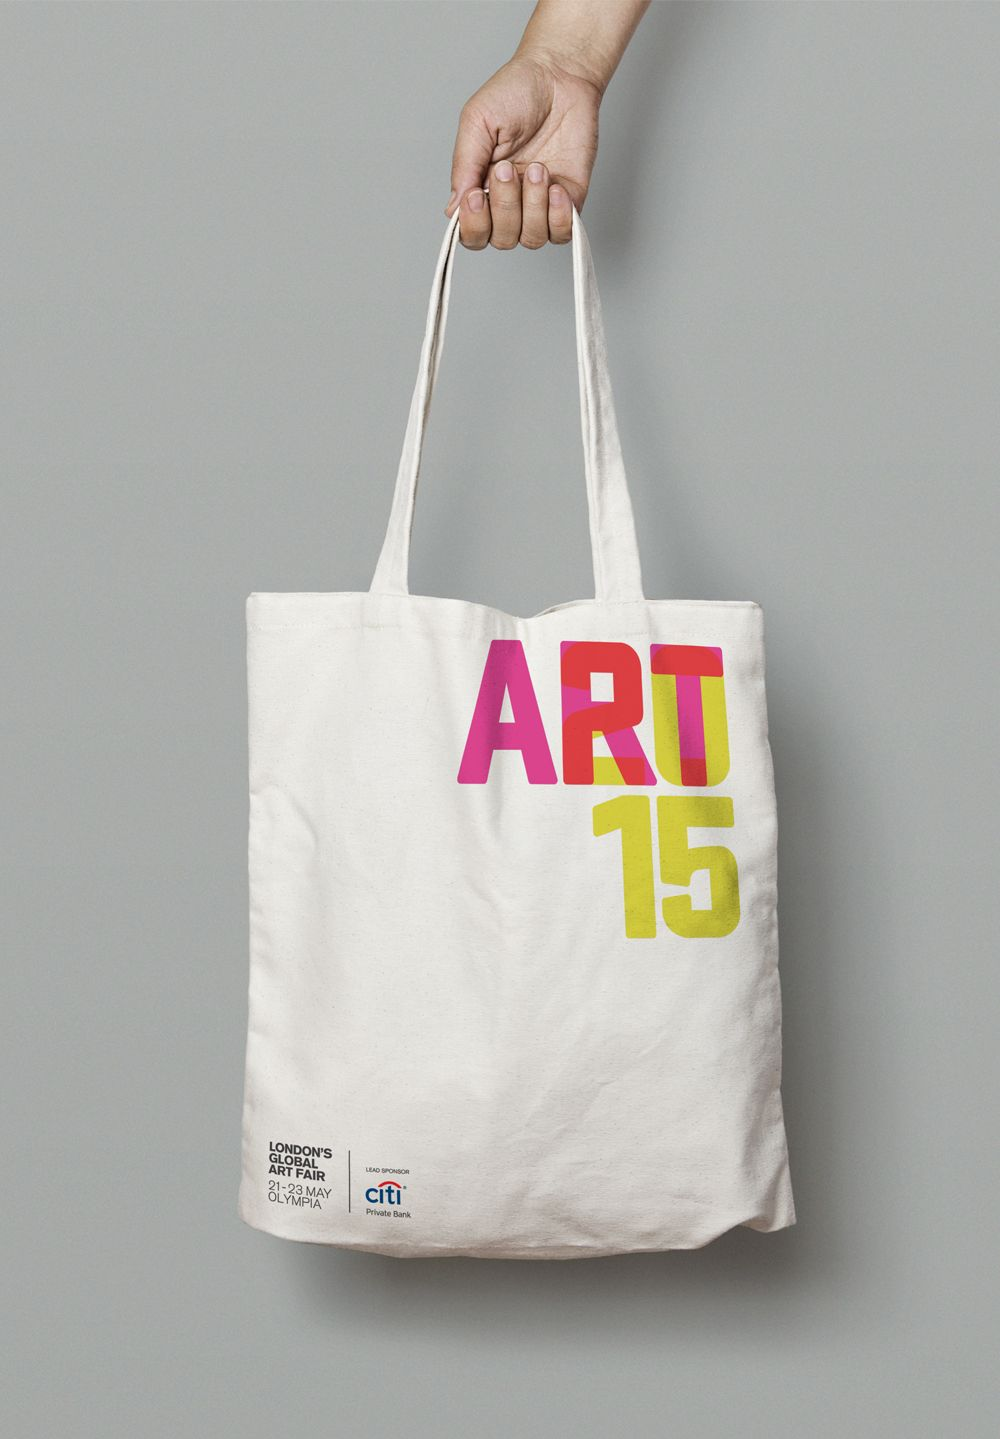 Pin by YUDESIGN on ART 15 Tote bag design, Canvas tote